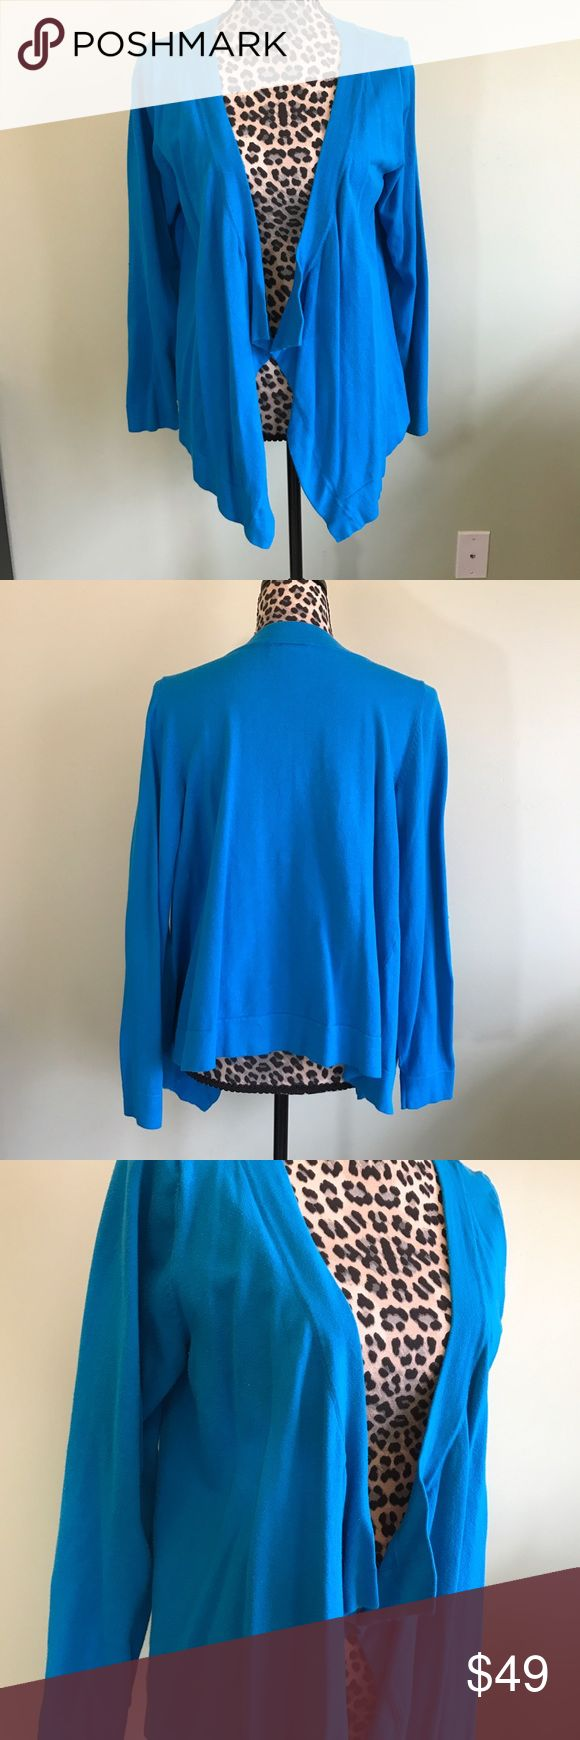 💙 Gorgeous blue open front cardigan Open front cardigan from Lane Bryant. Size 14/16 Lane Bryant Sweaters Cardigans